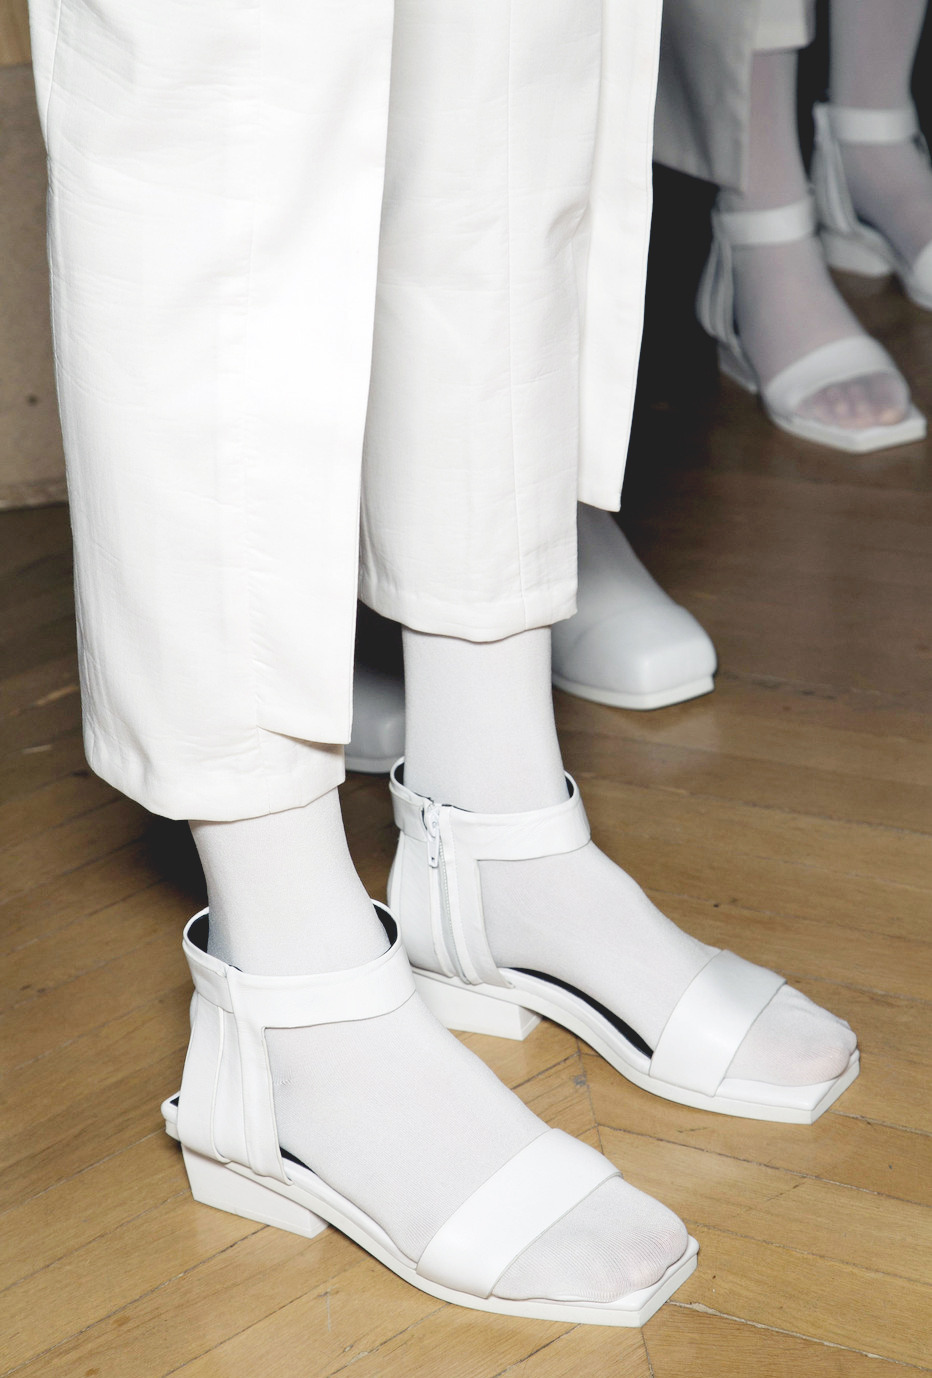 RAD by Rad Hourani, spring/summer 2013